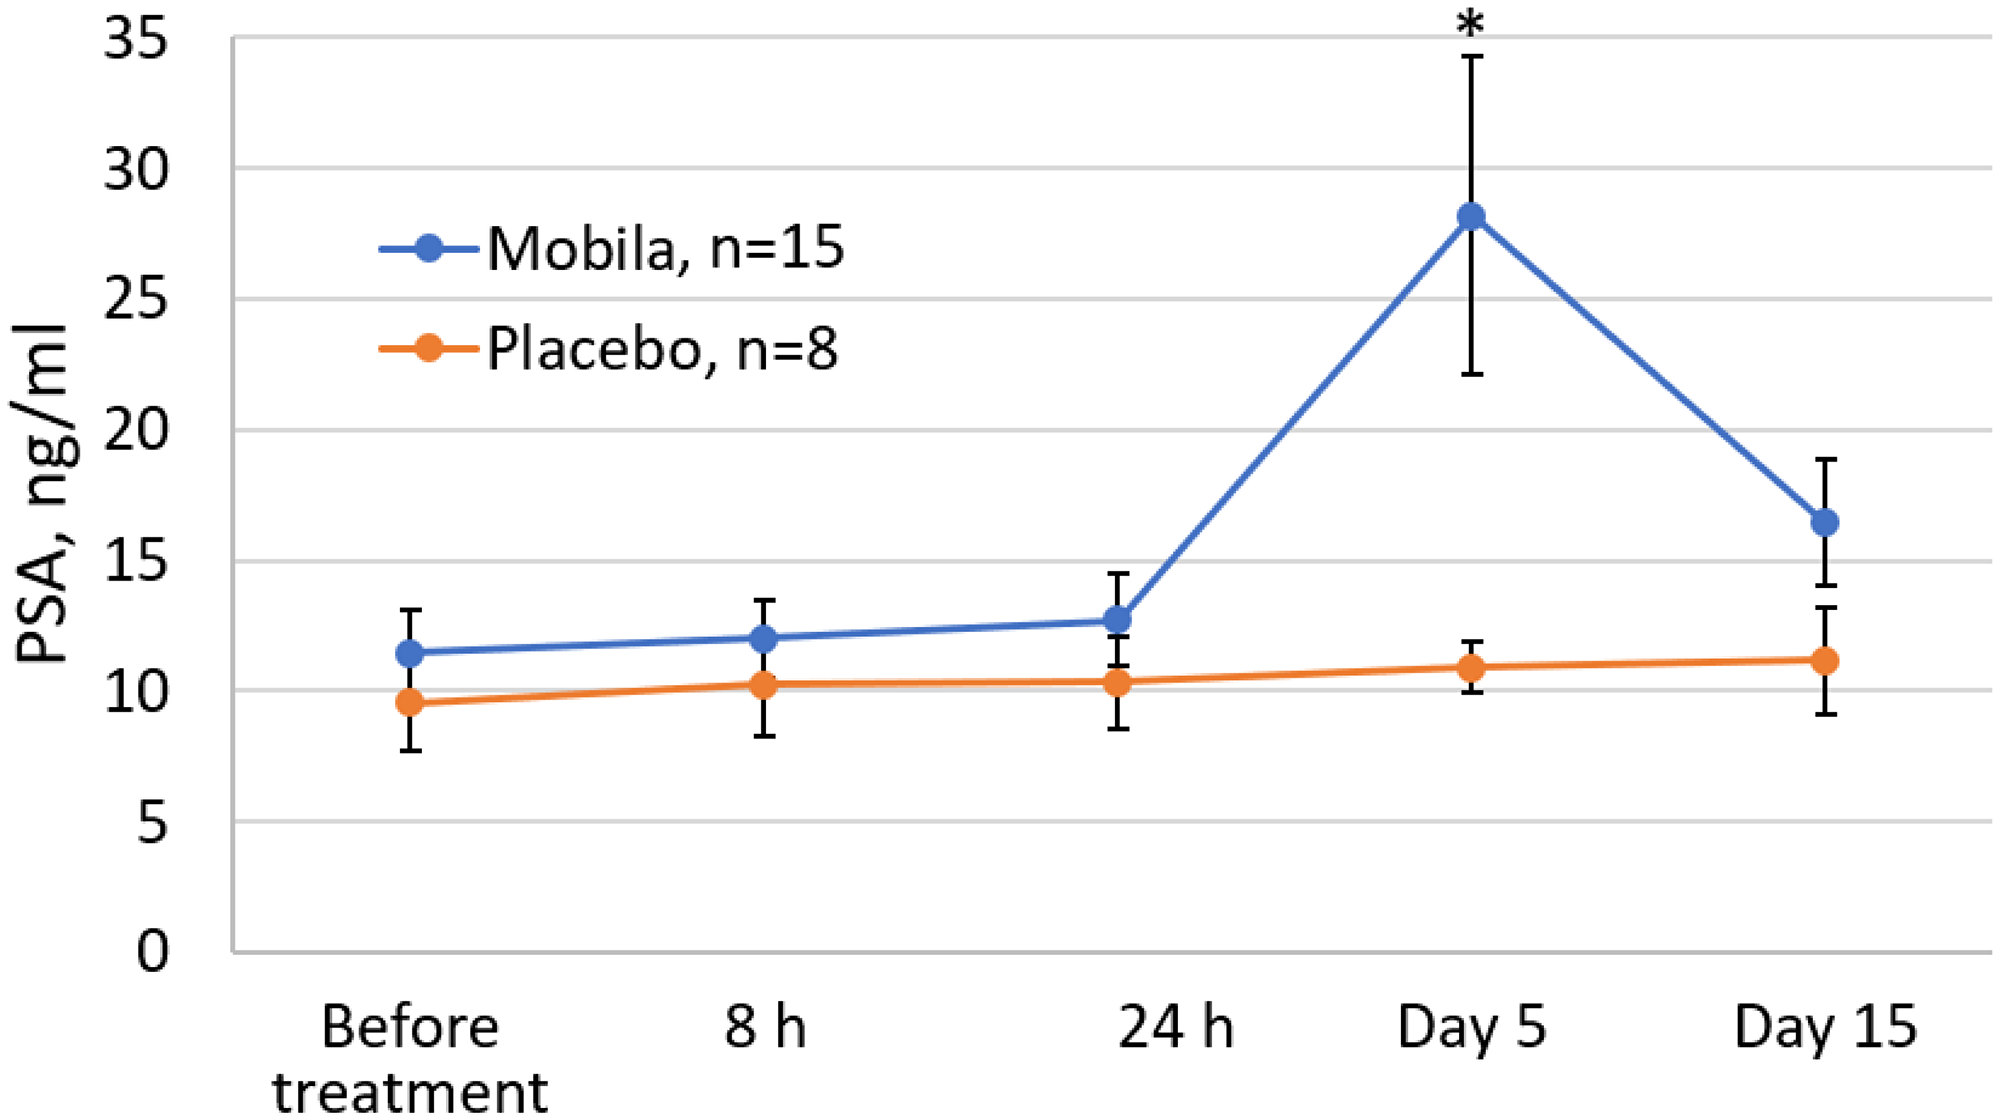 Effect of Mobilan injection on total PSA levels in the serum of prostate cancer patients (ng/mL).